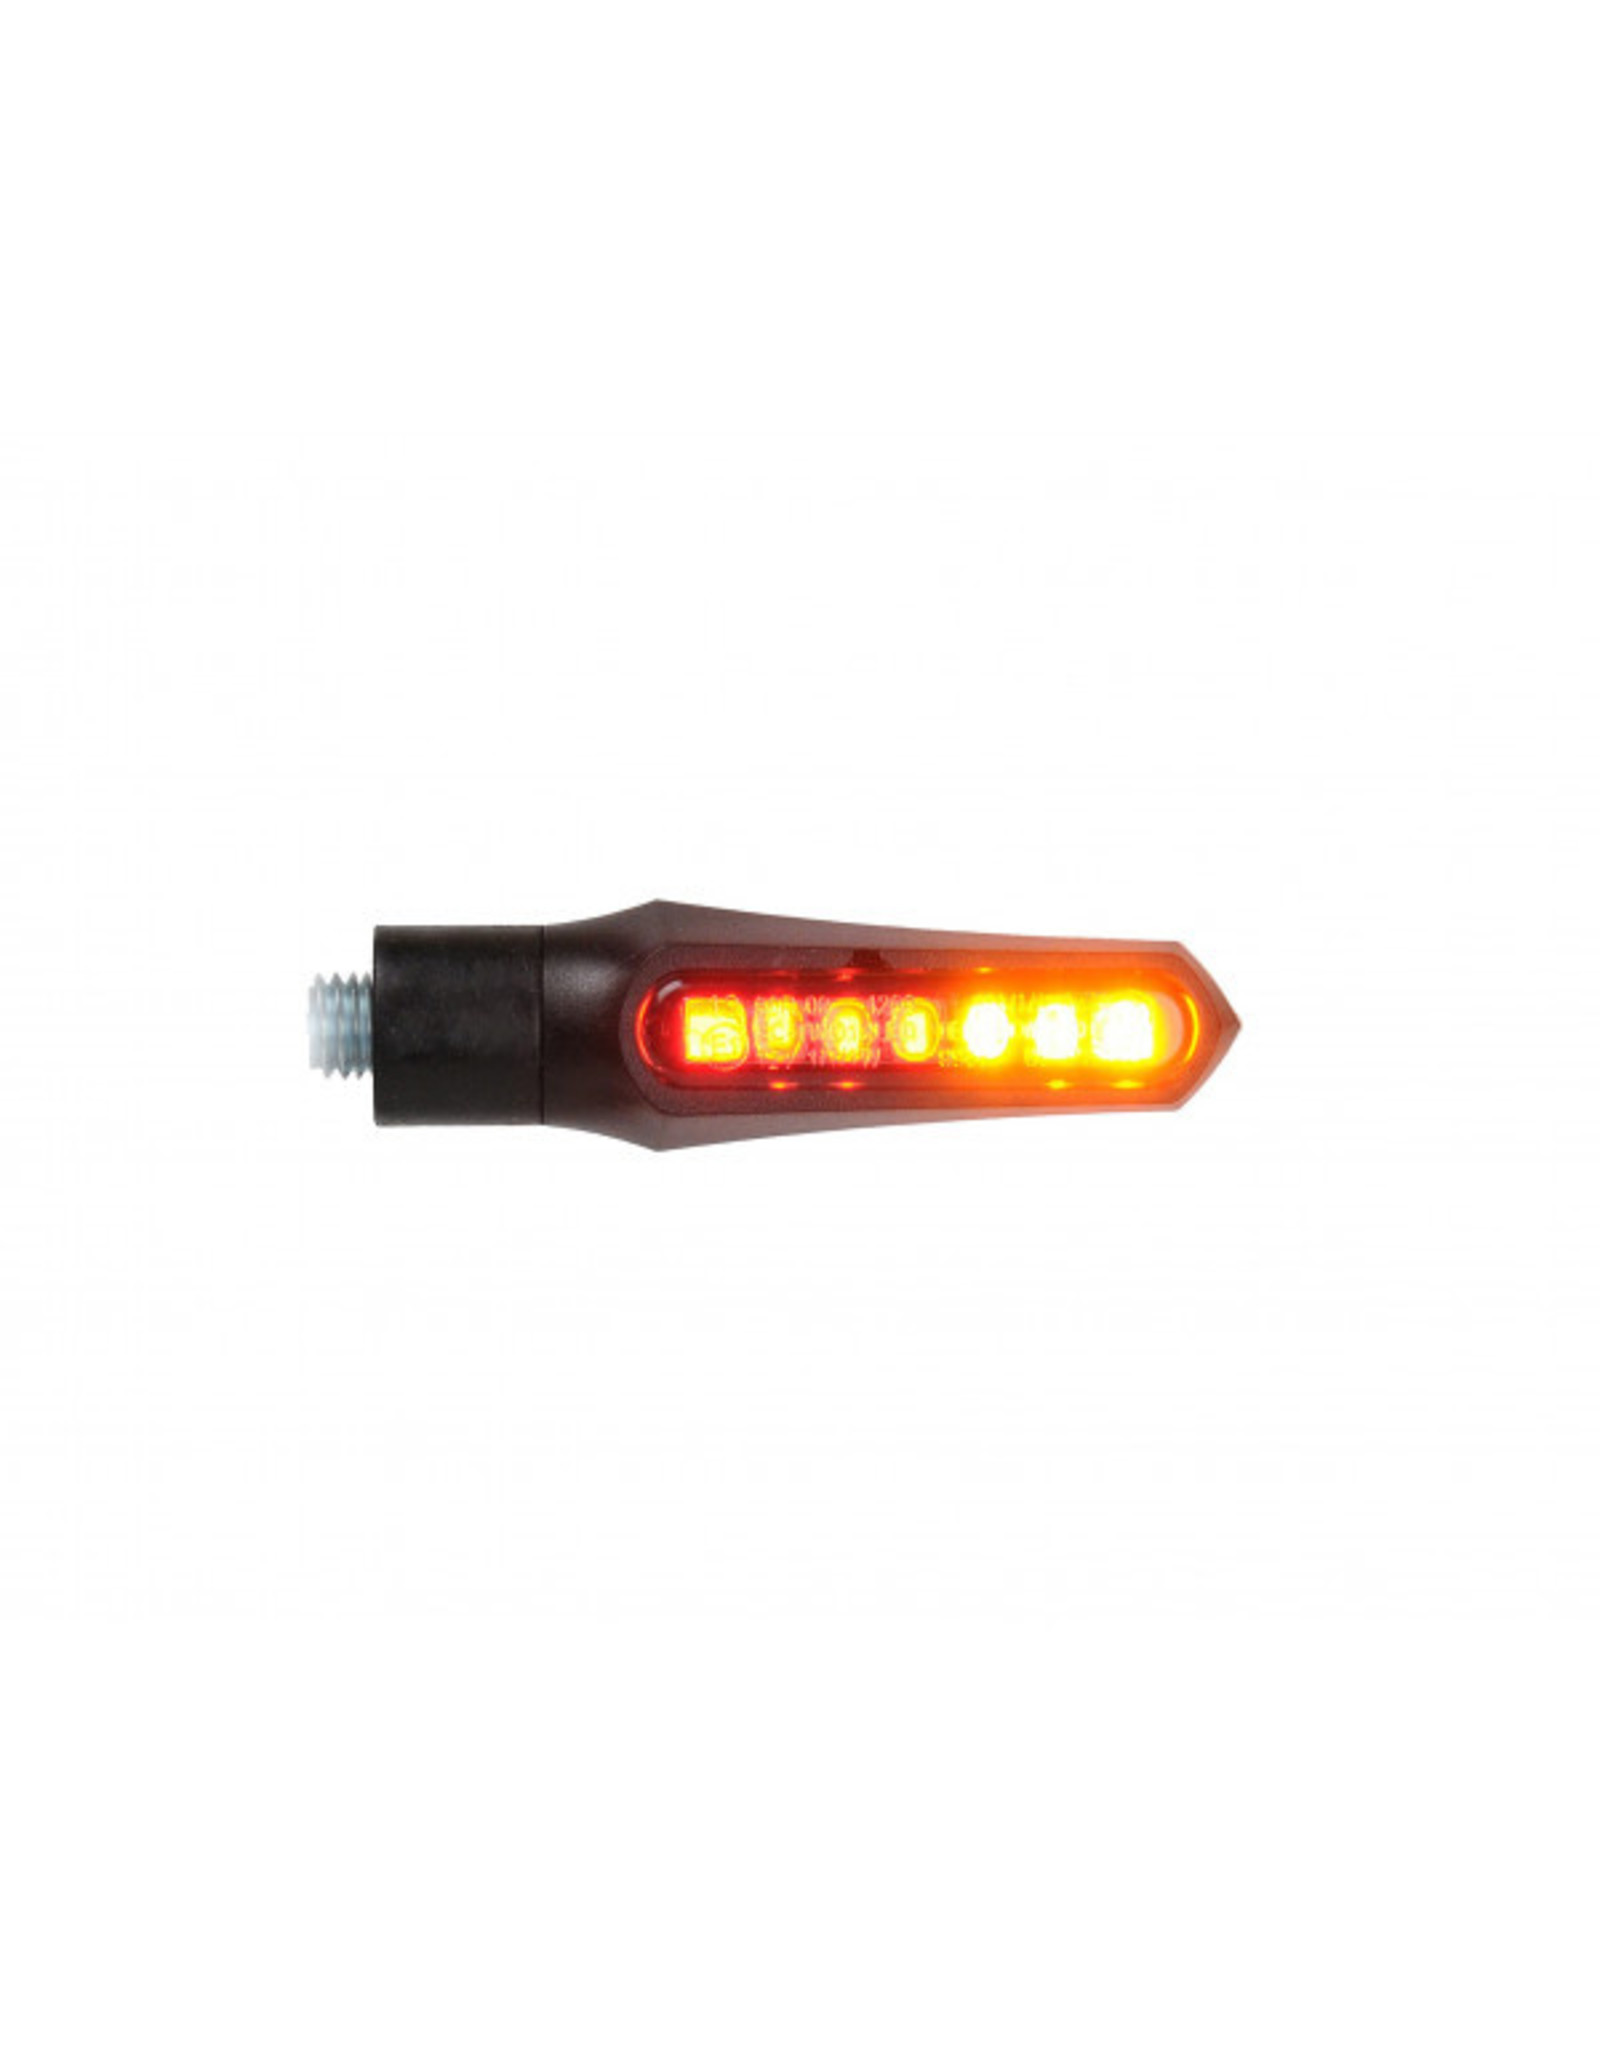 LIGHTECH LIGHTECH FRE916 PAIR OF APPROVED LED TURN SIGNAL BLACK